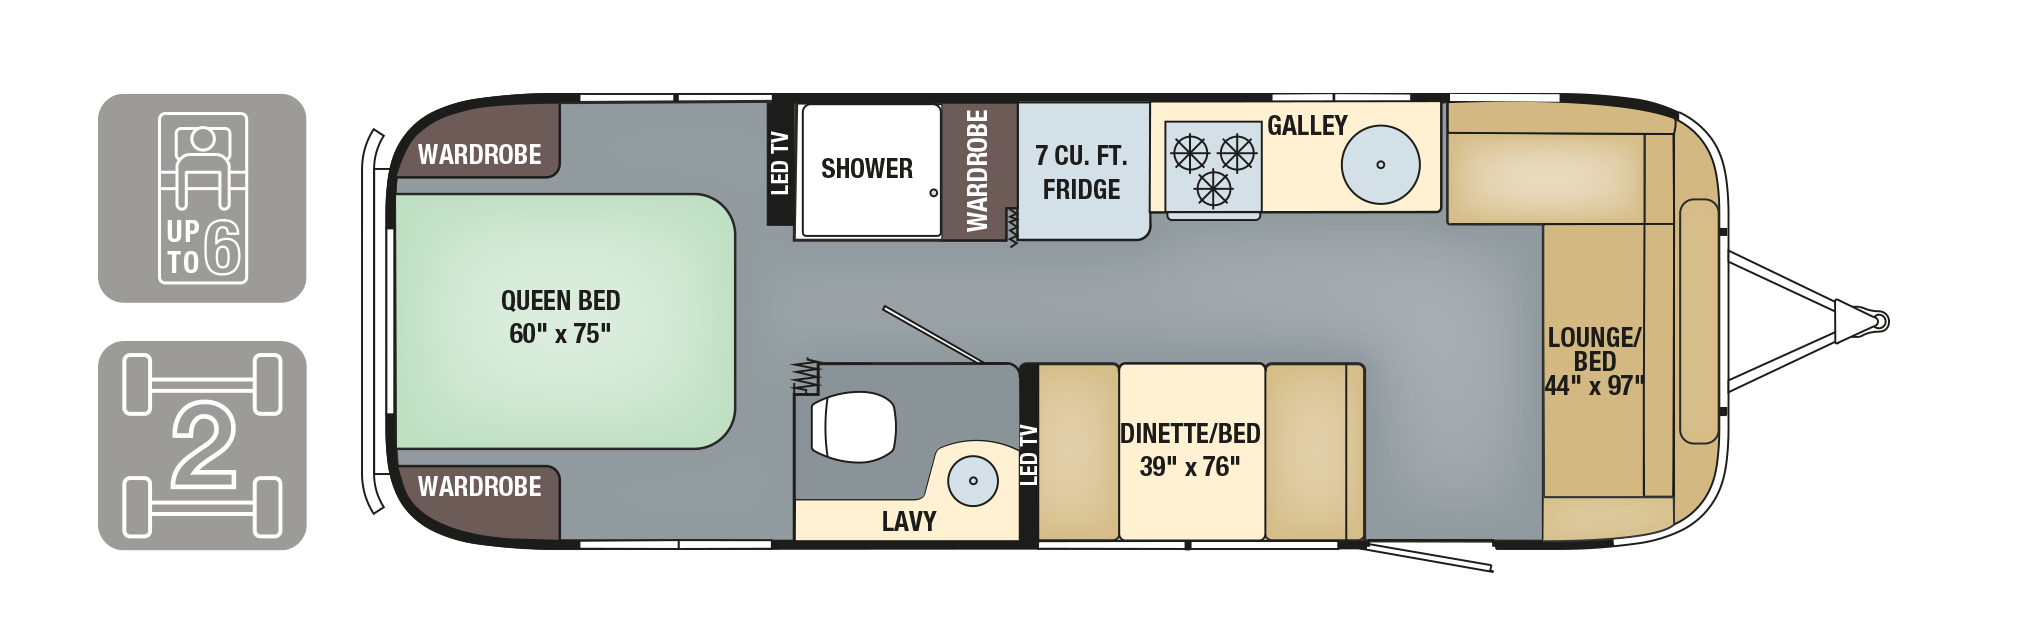 AIR_2017-Floorplan_Intl_Signature_28_h